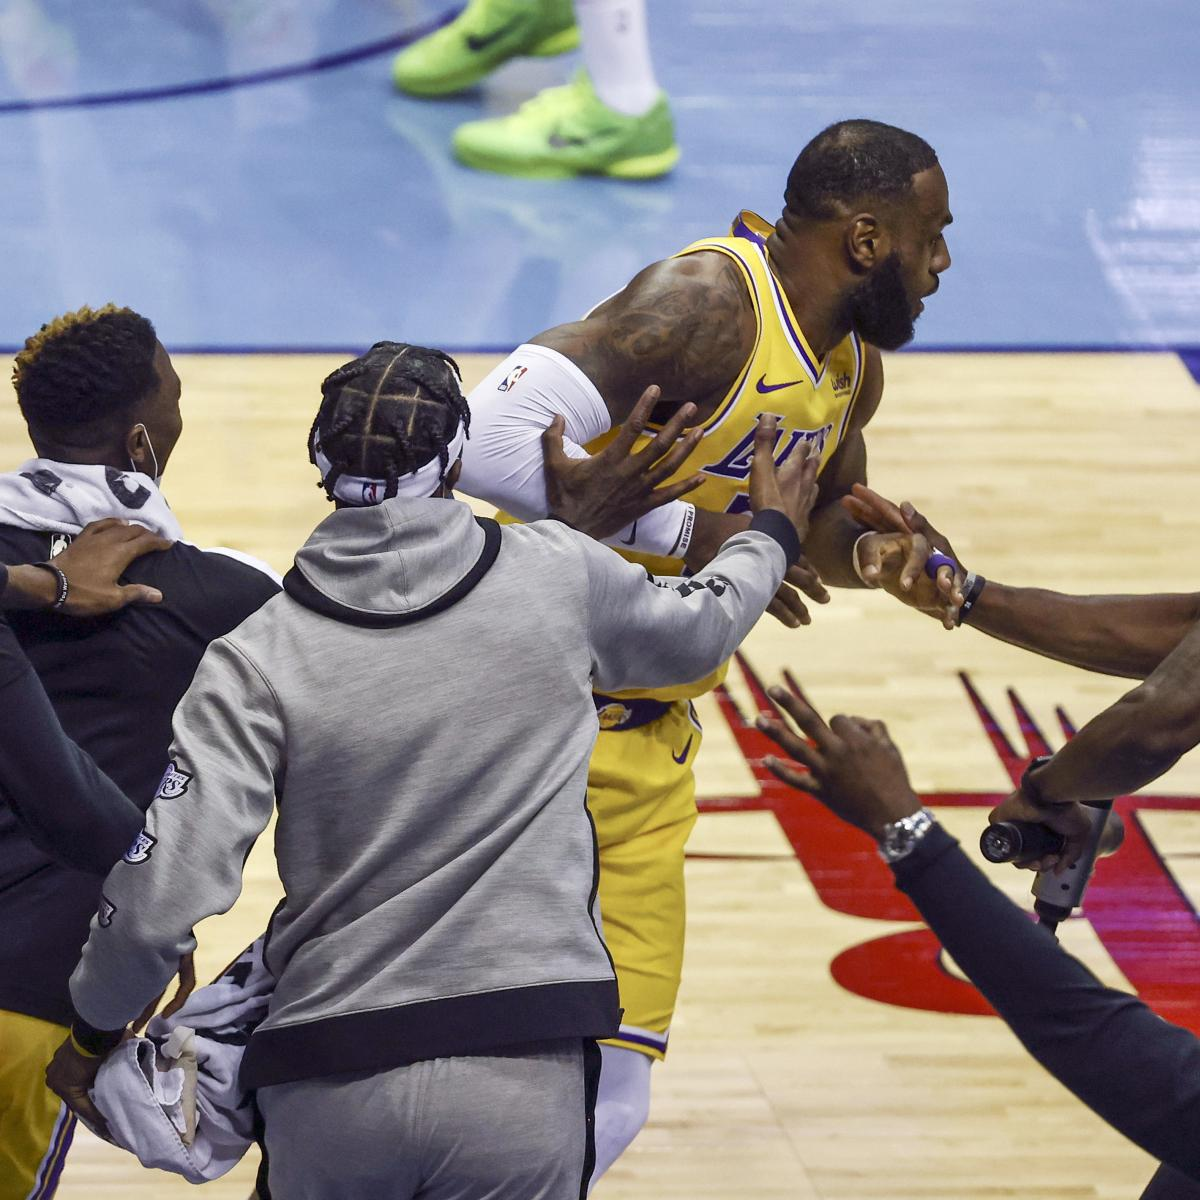 Lakers' LeBron James Said Dennis Schroder Bet He Wouldn't Make No-Look Corner 3